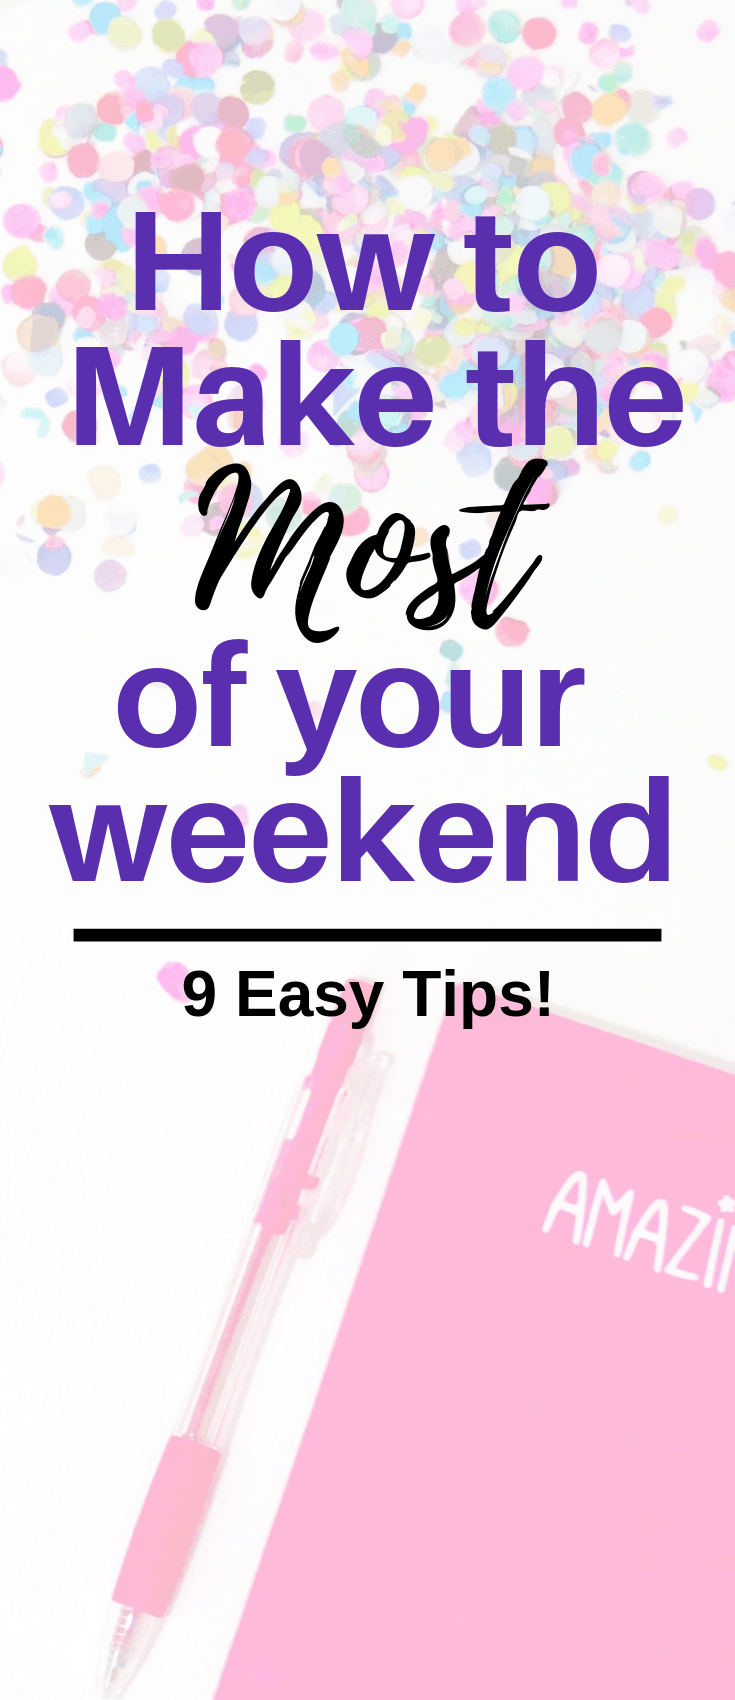 If you're wondering how to get the most out of your day & make every day count, then you're in the right place! Here are 9 easy ways to get as much out of each weekend or day as possible, so that when Monday comes around you'll feel like you were productive all weekend. Each one will make a huge difference and you'll fight the Sunday Scaries.